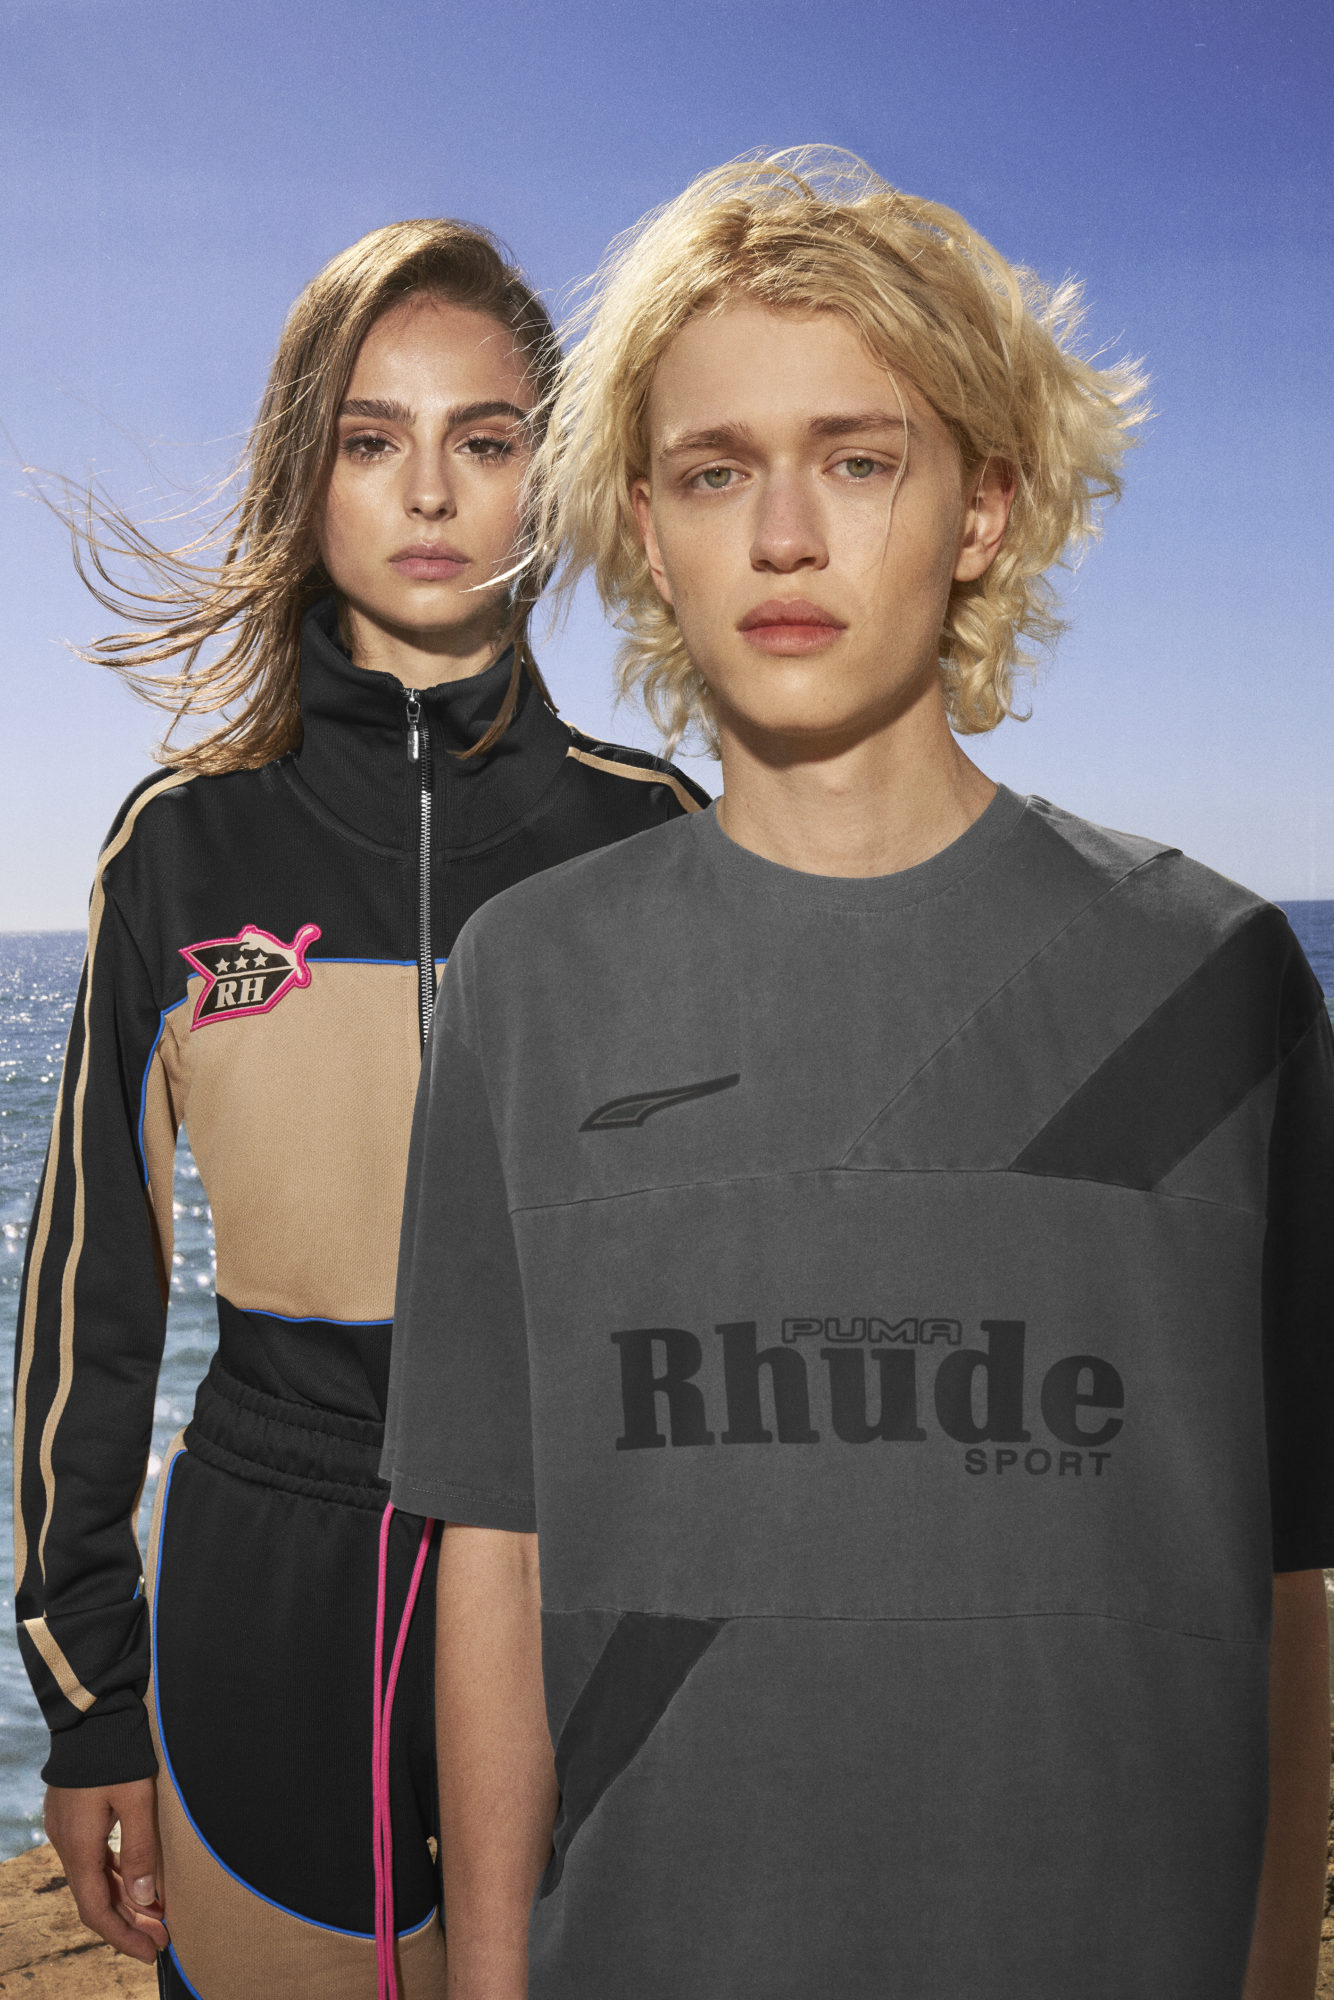 PUMA RHUDE LOS ANGELES COLLABORATION